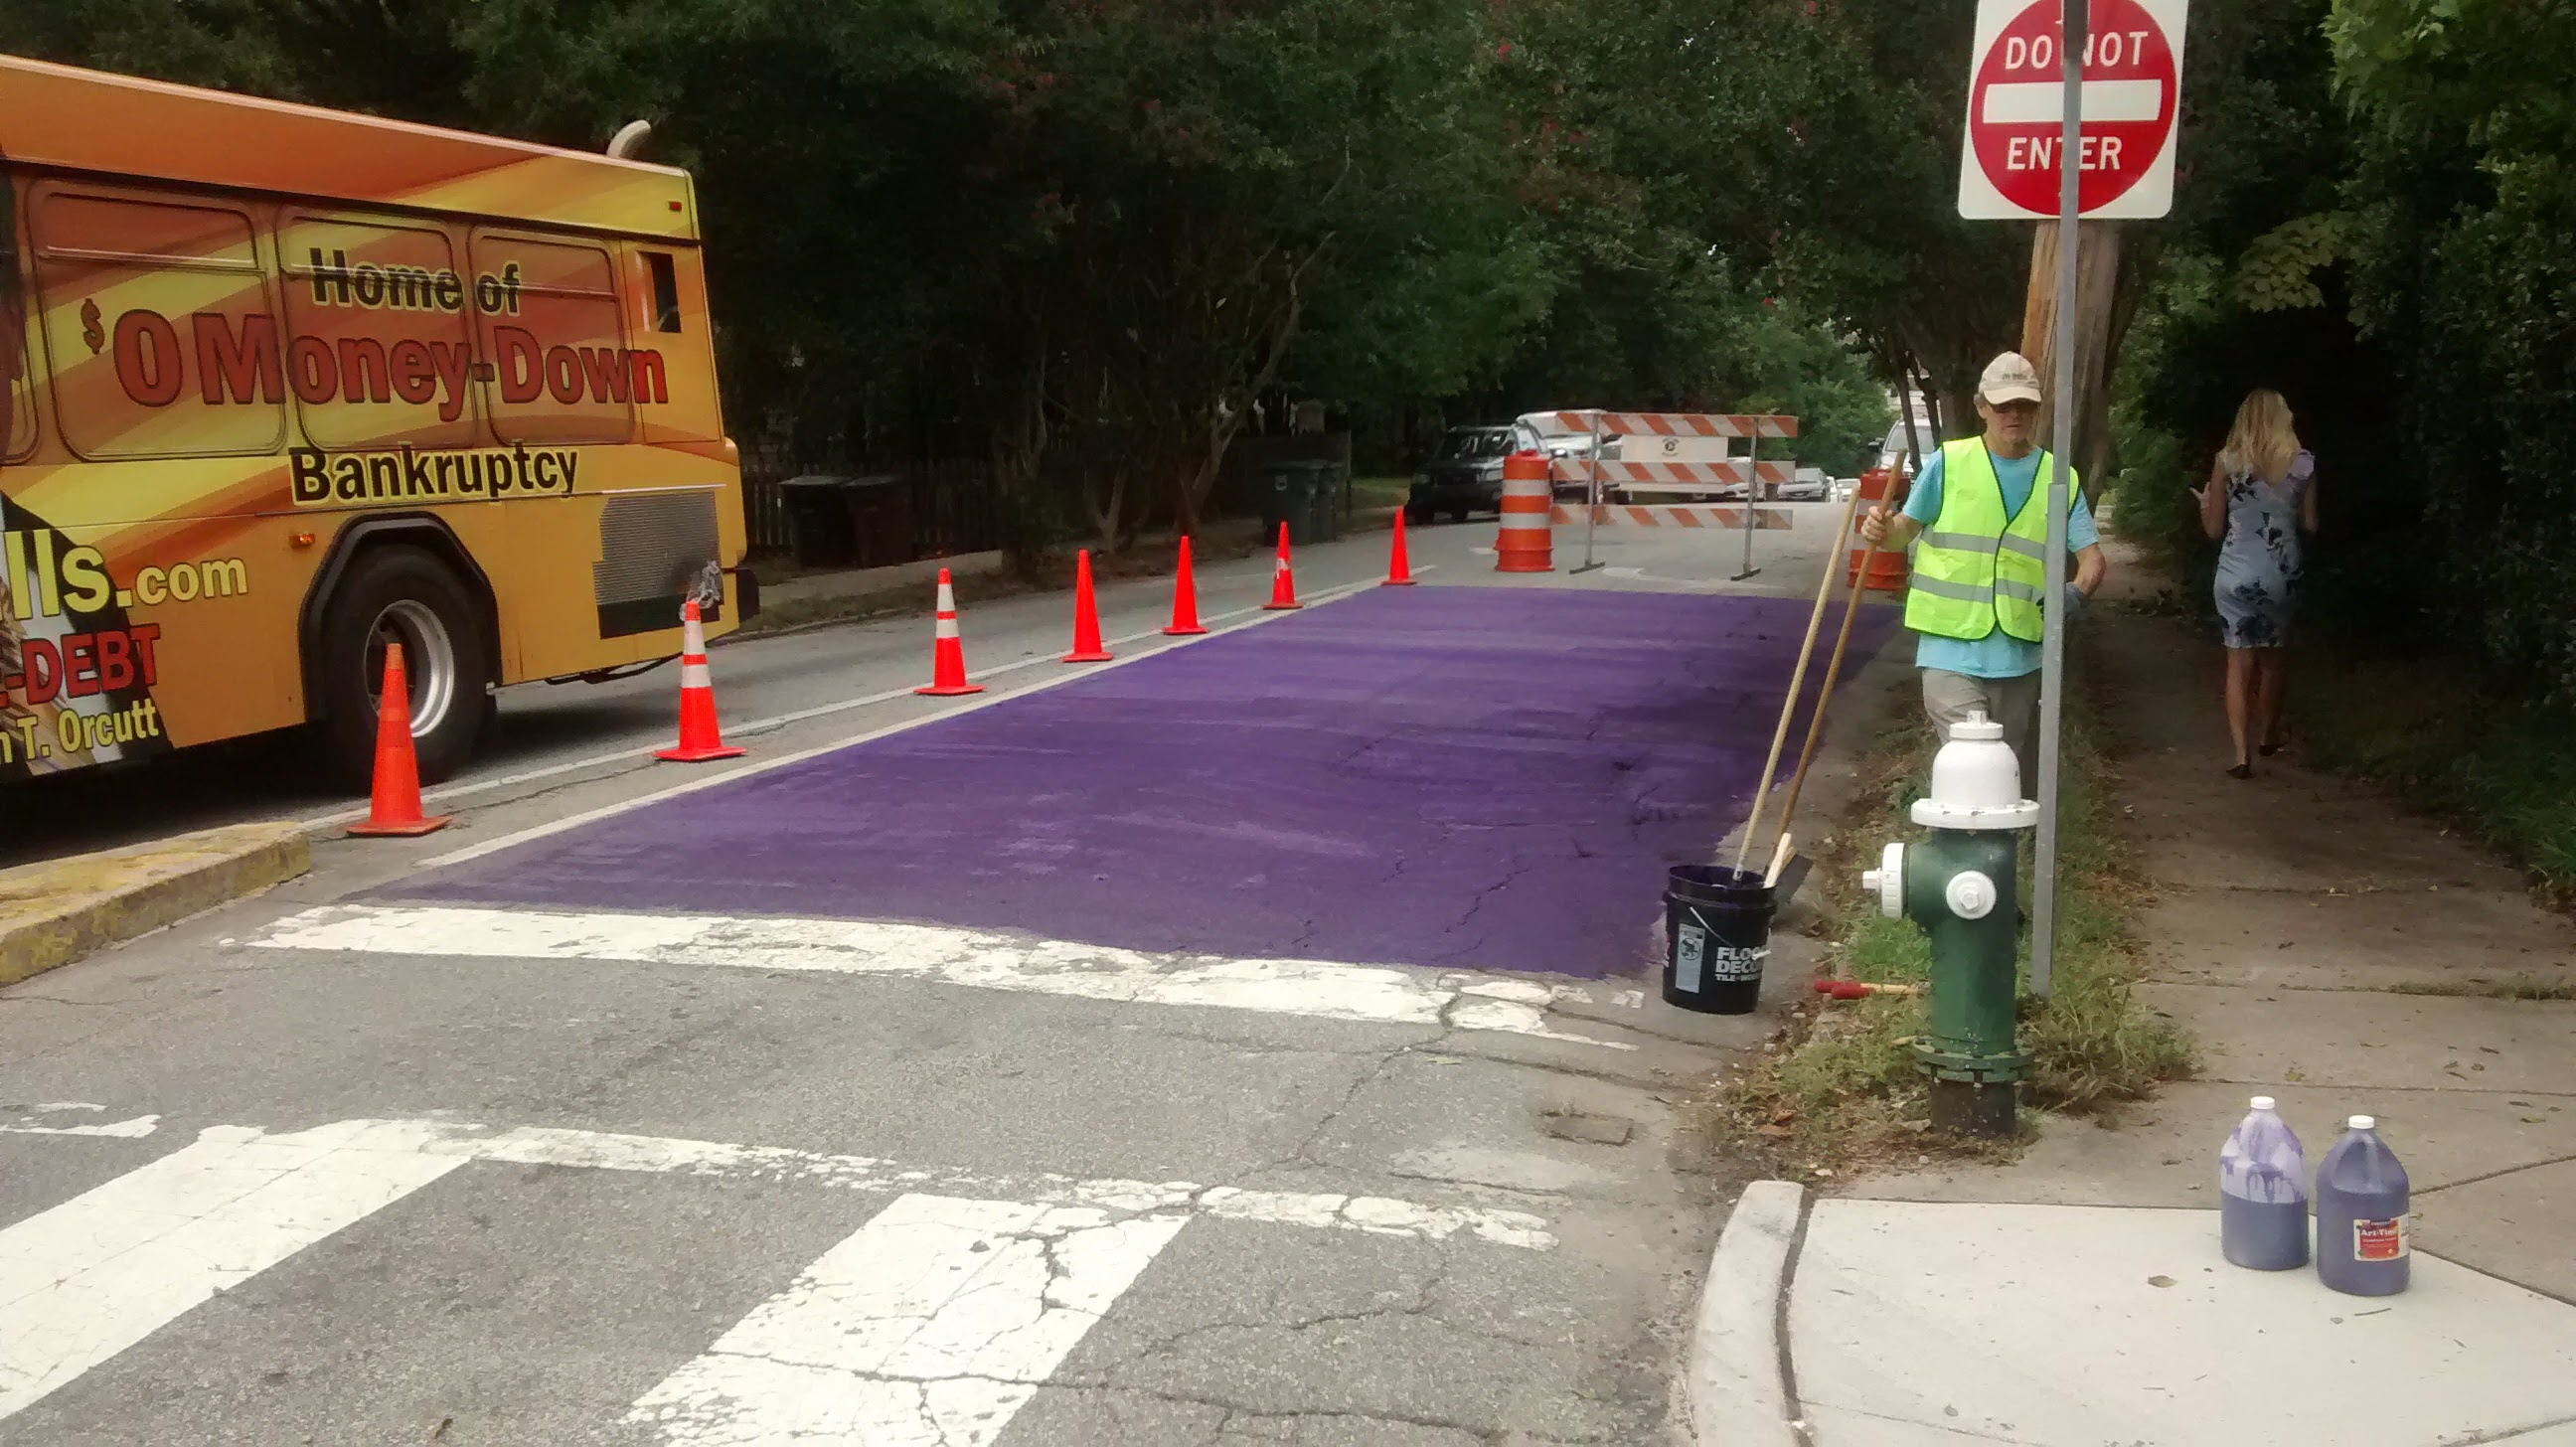 Part of the street blocked off and painted purple